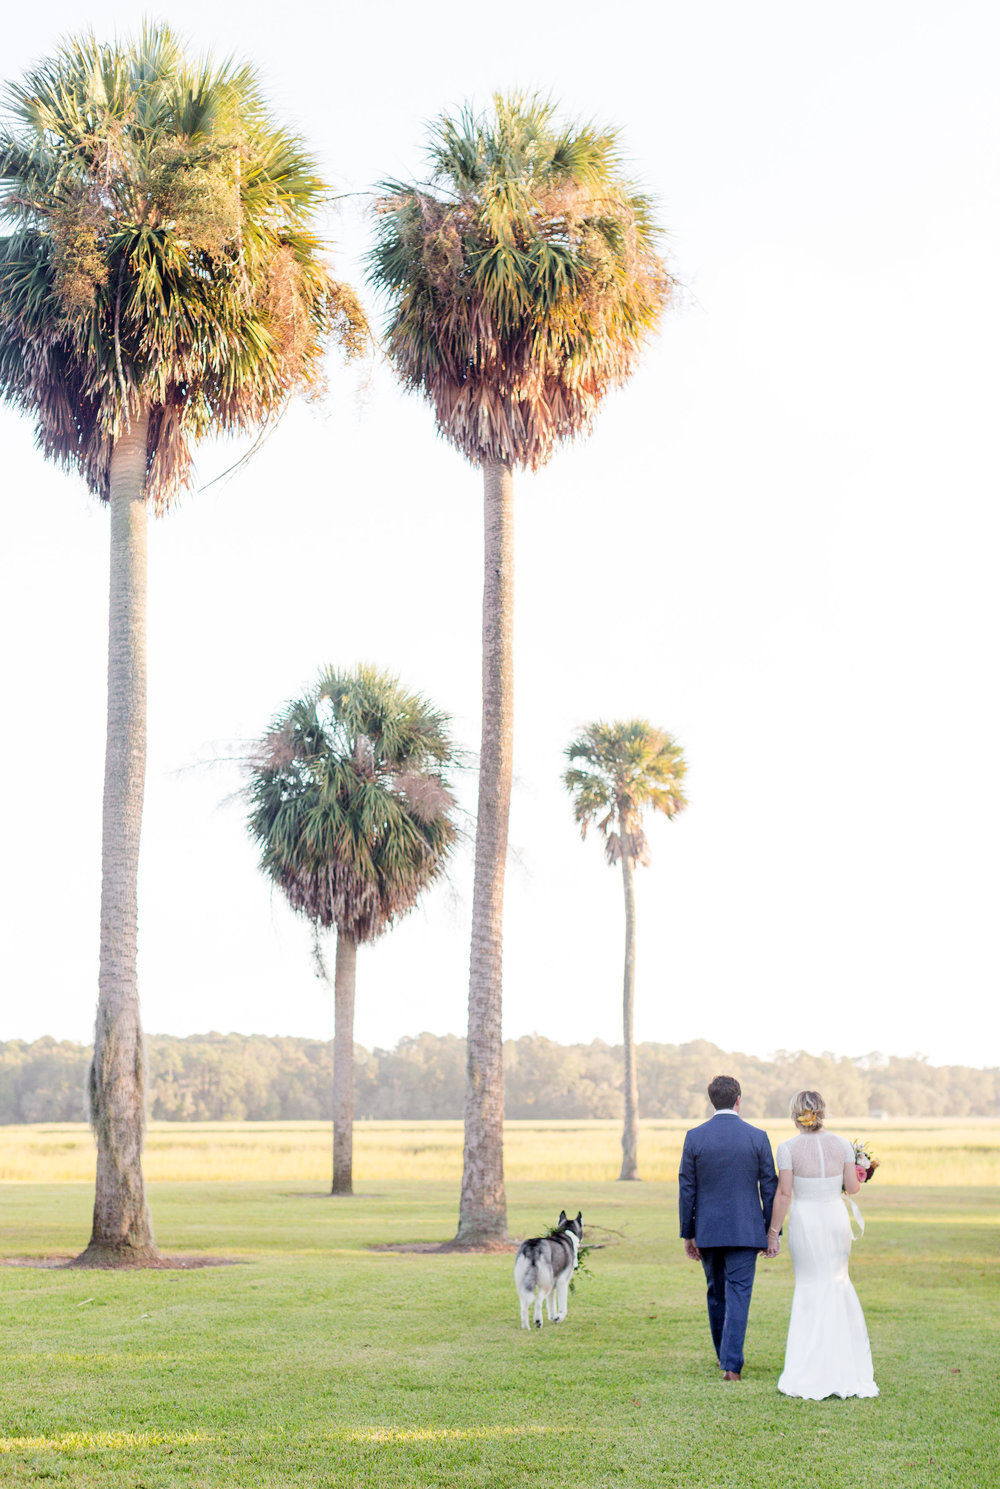 Carrie + Douglas: Dream Edisto Island Wedding at Cypress Trees Plantation | Palmetto State Weddings